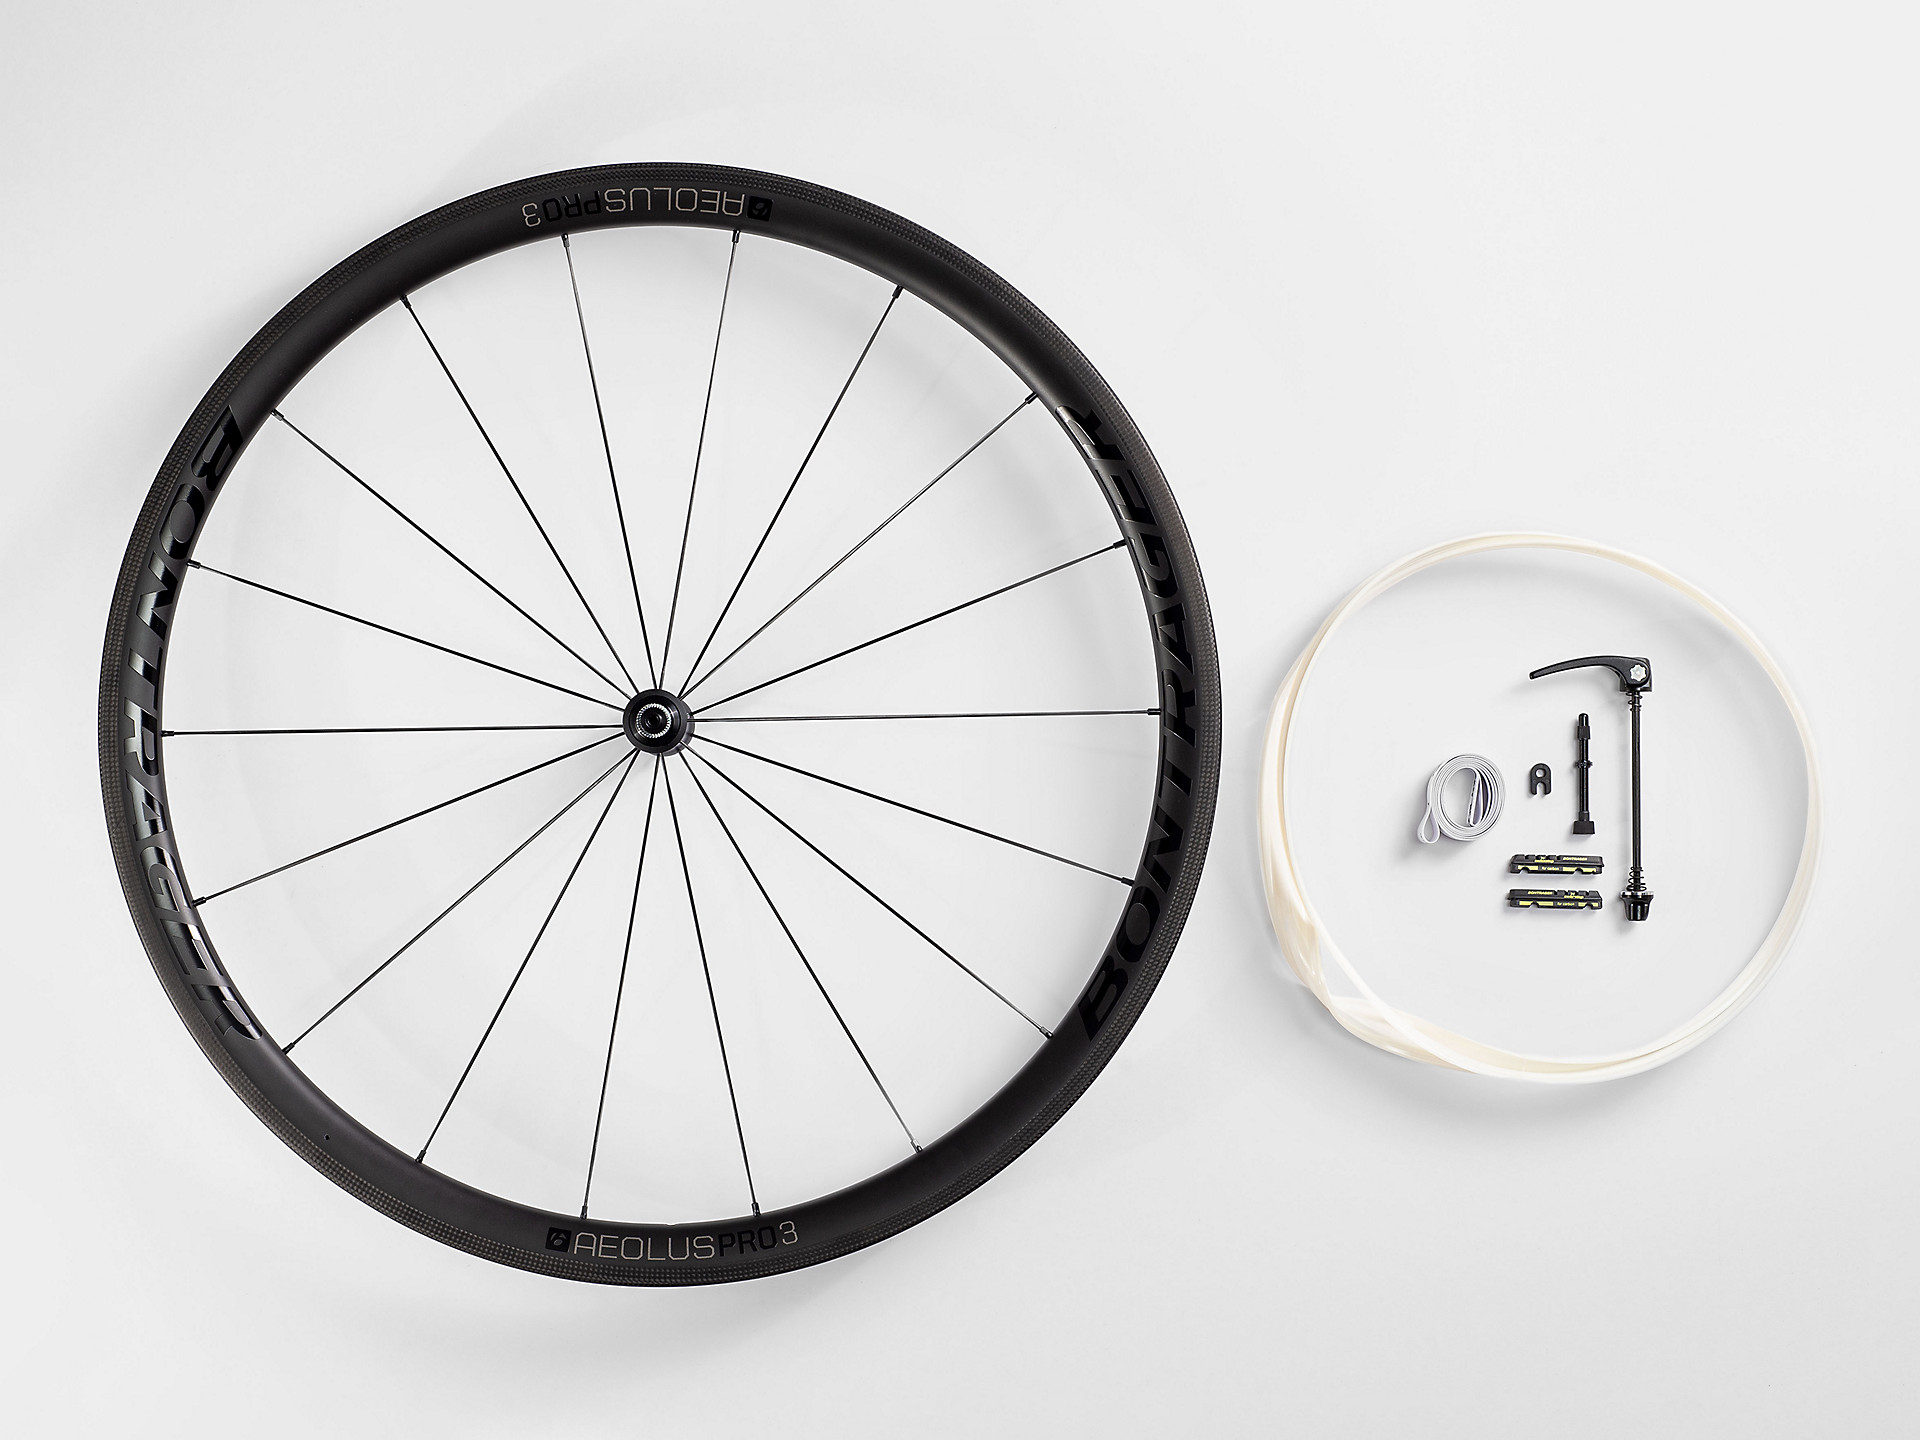 cycle Club Personalized Carbon Wheel Decals Promote Your Club on Your Wheels